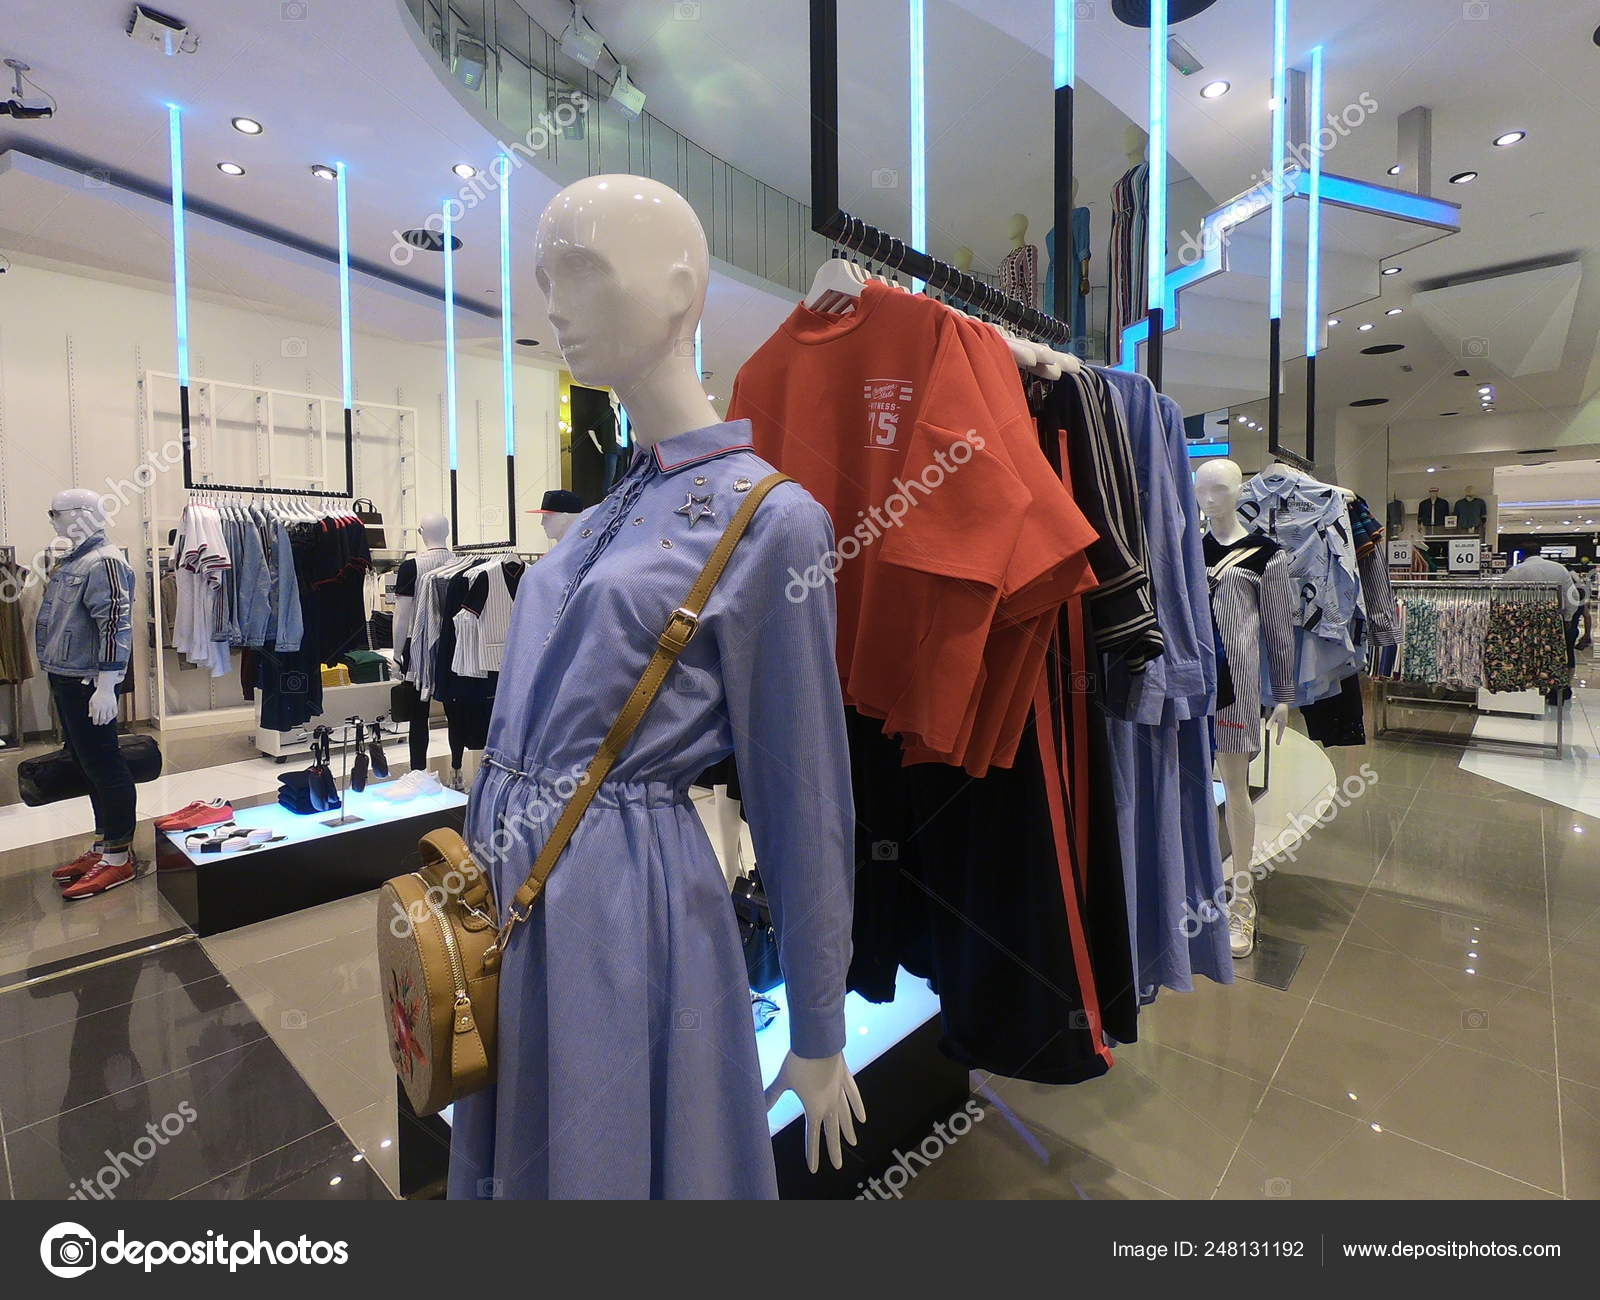 Dubai UAE February 2019 - Women's Dress and Shirts displayed for